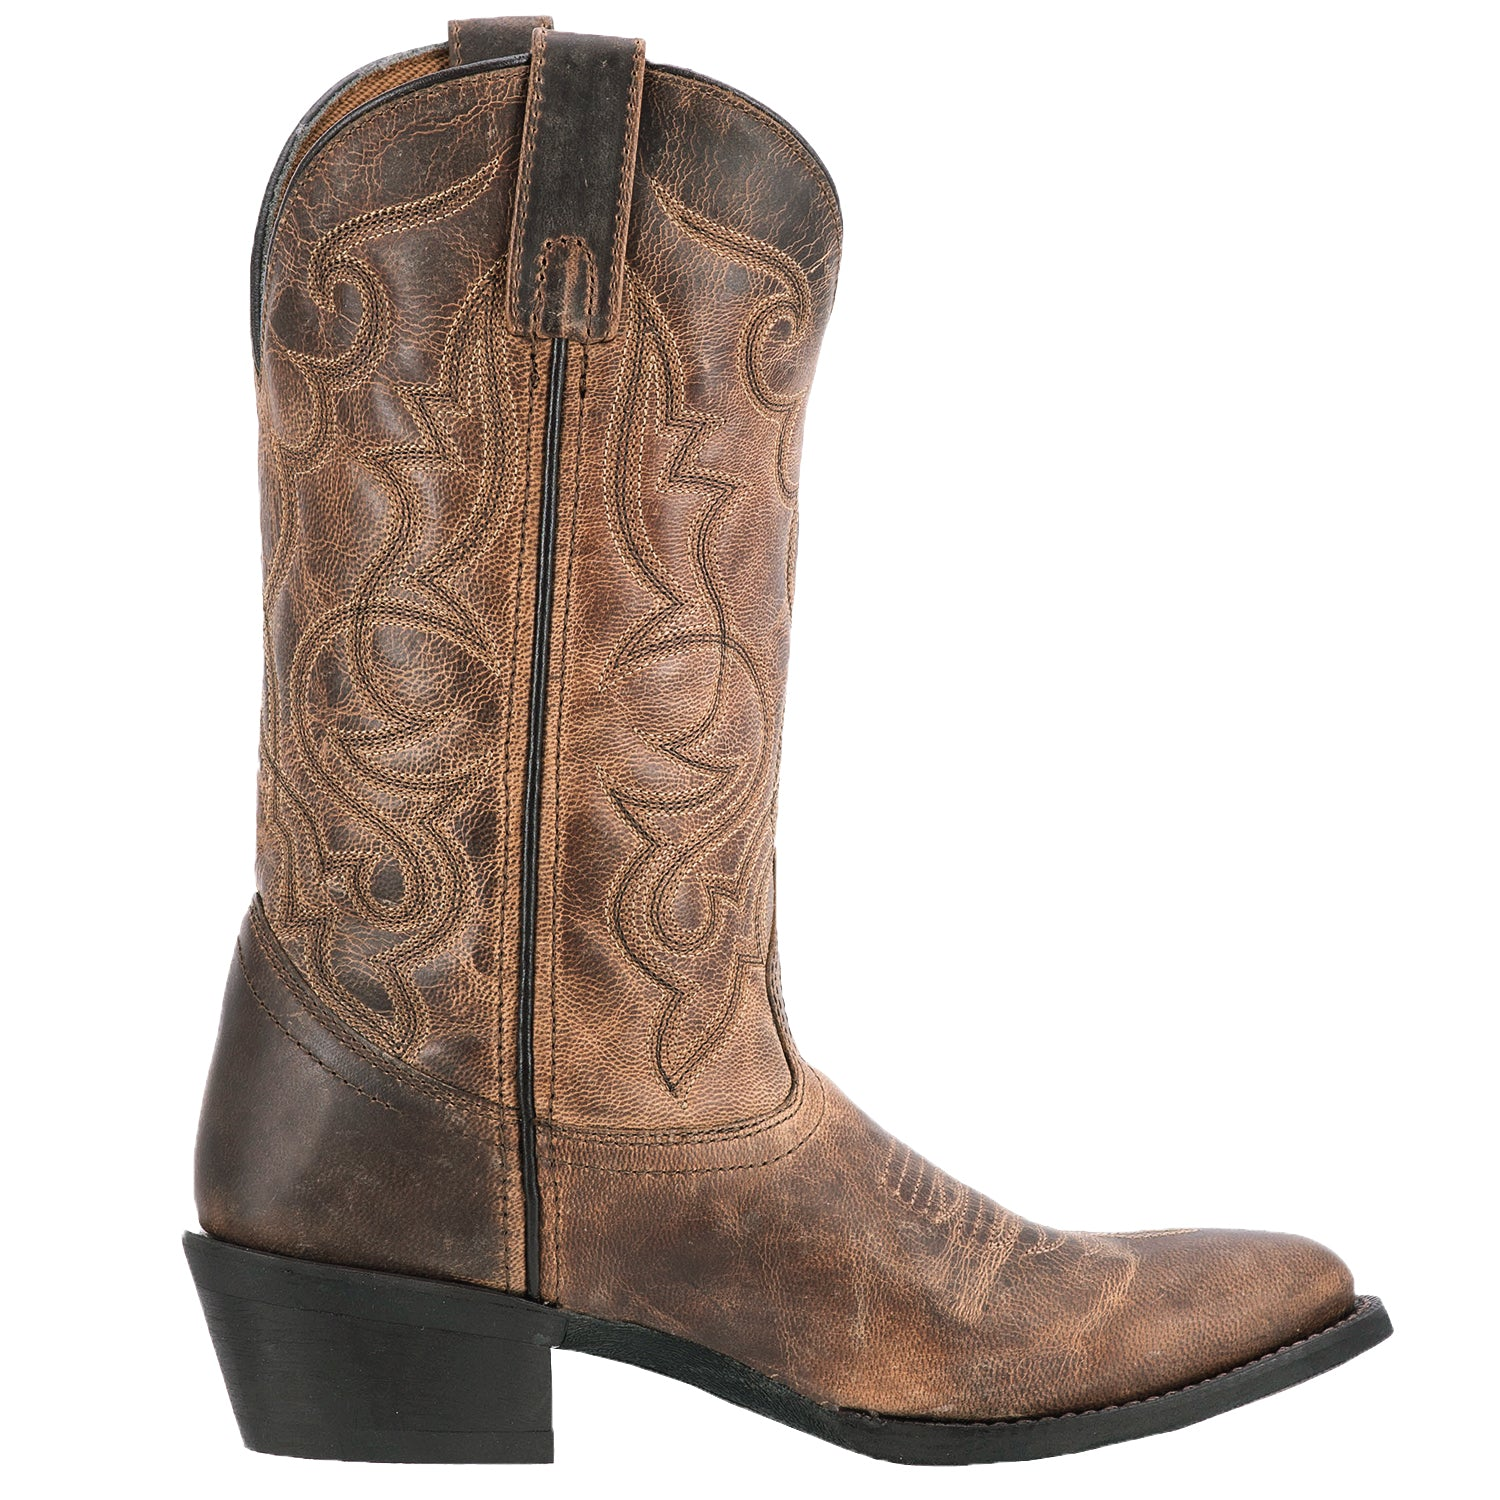 MADDIE LEATHER BOOT 4197004902442